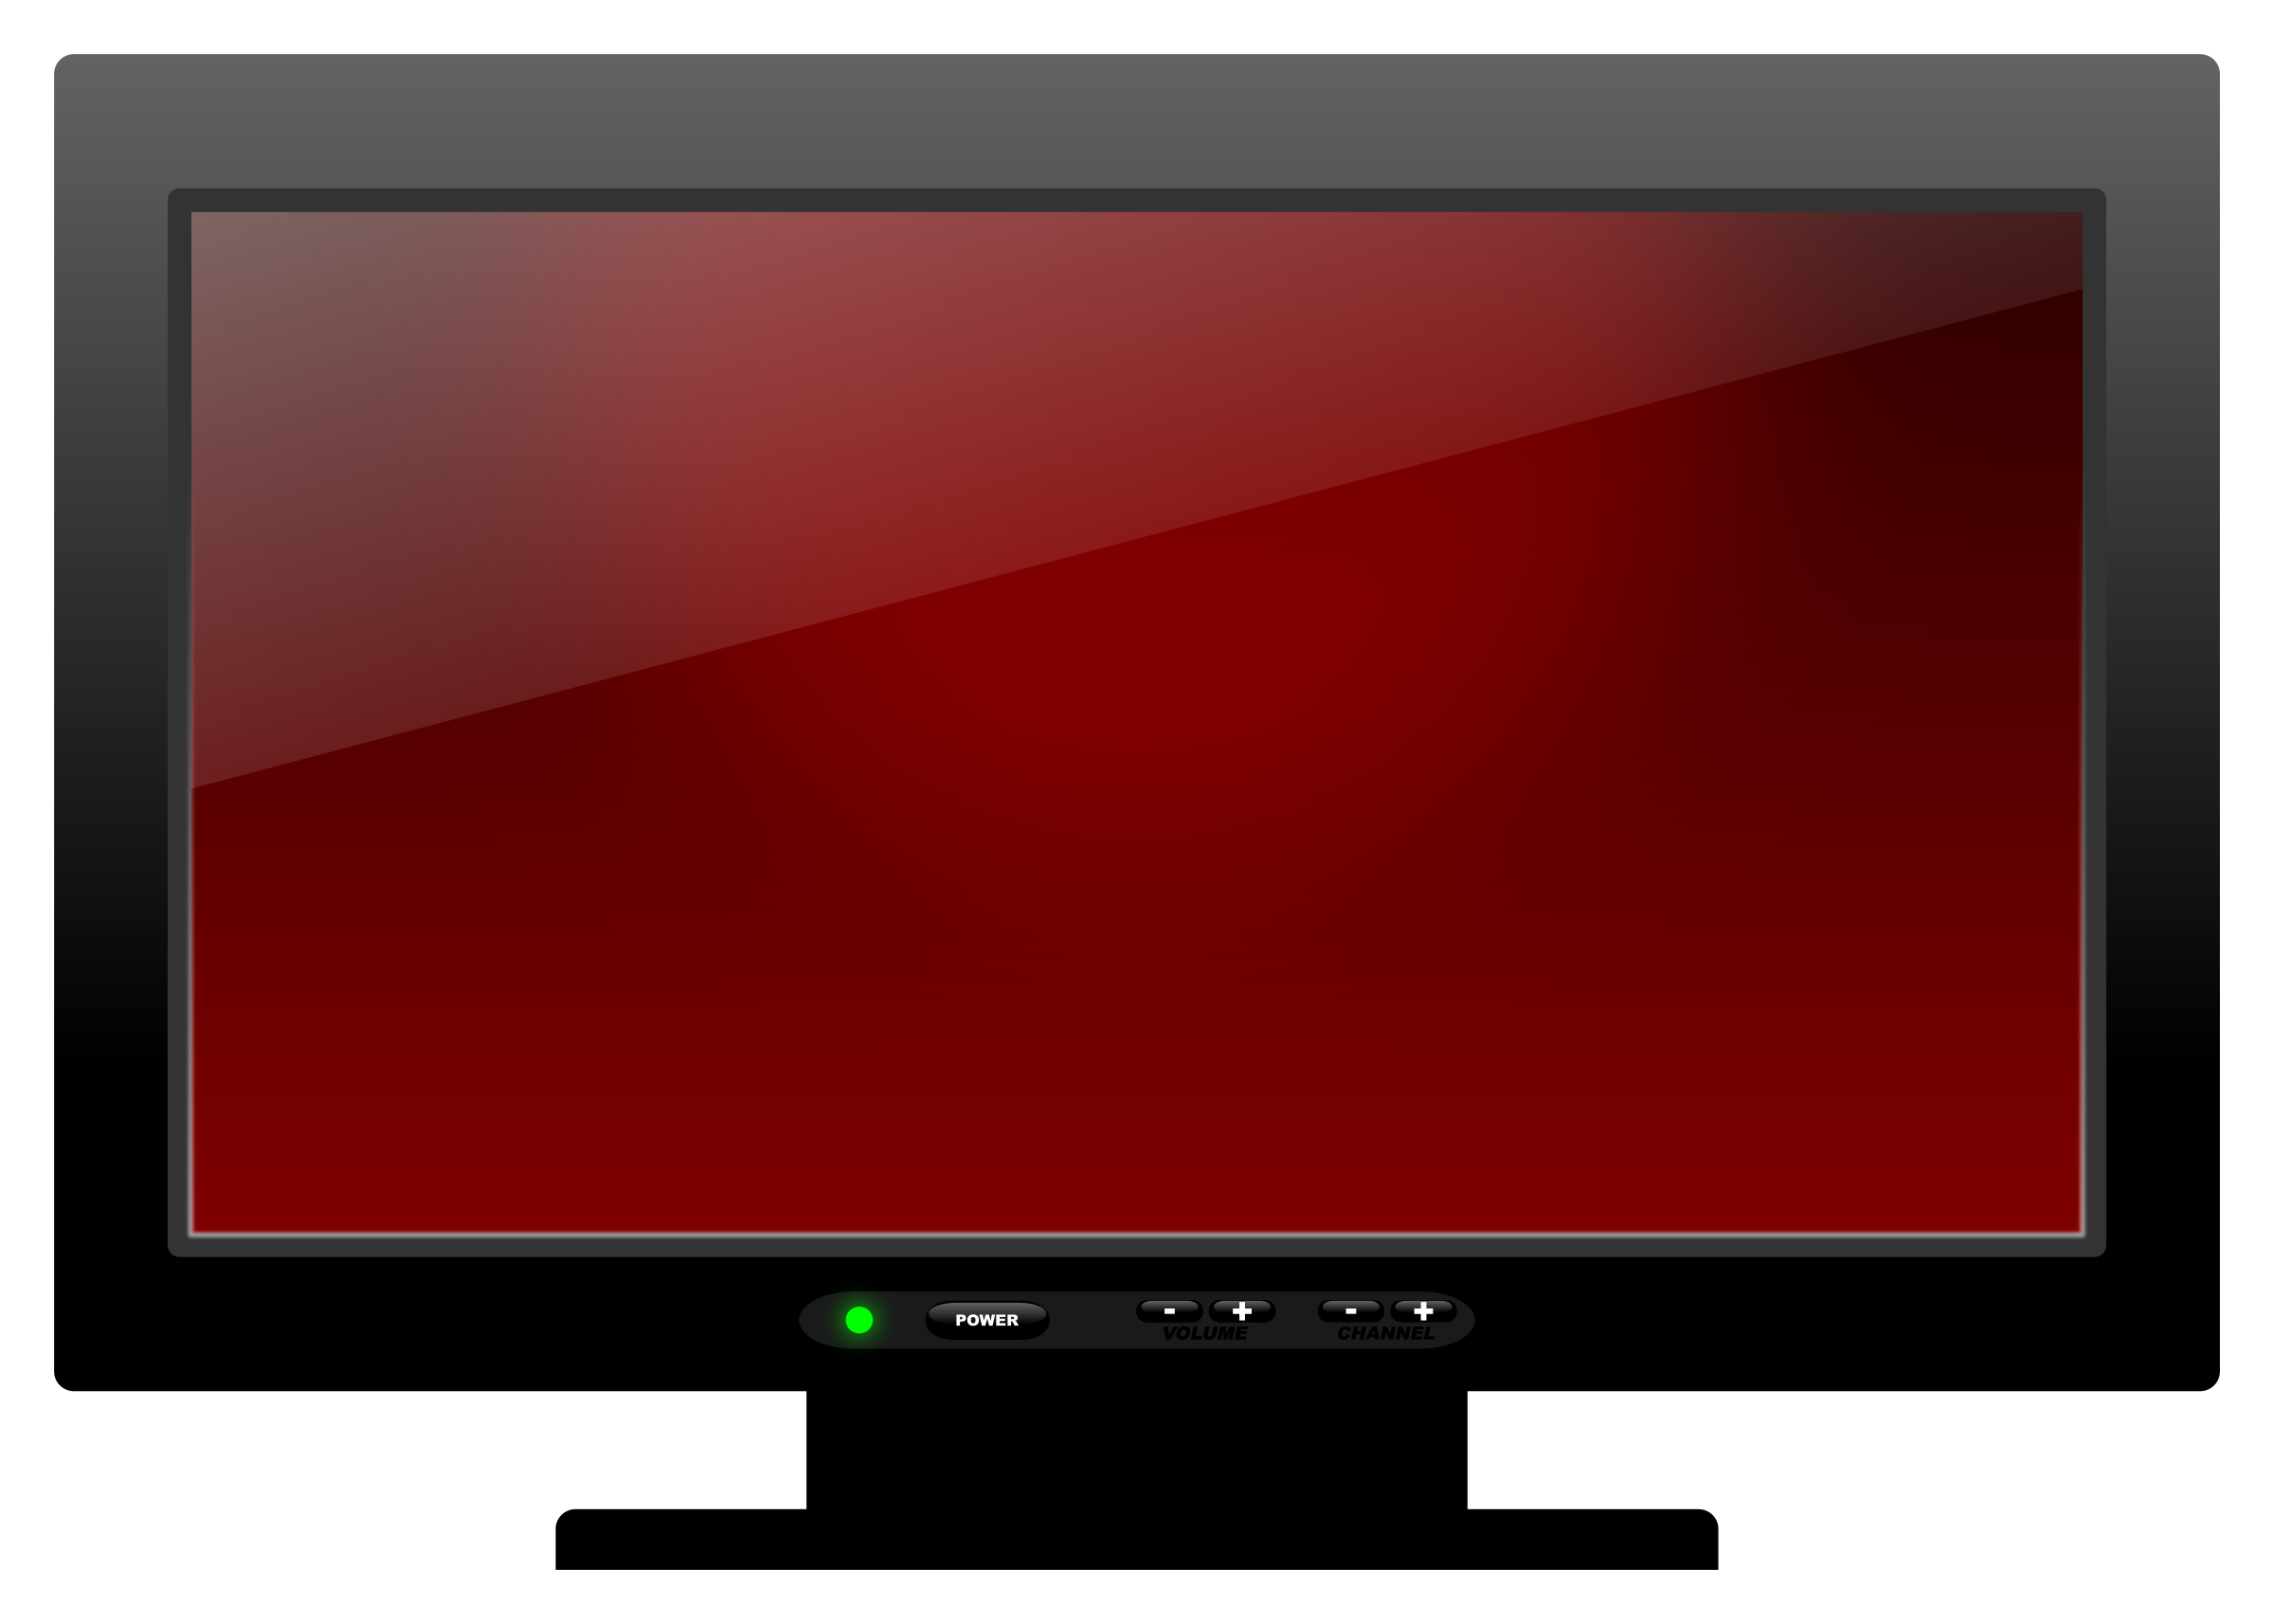 Plasma big image png. Clipart tv telly